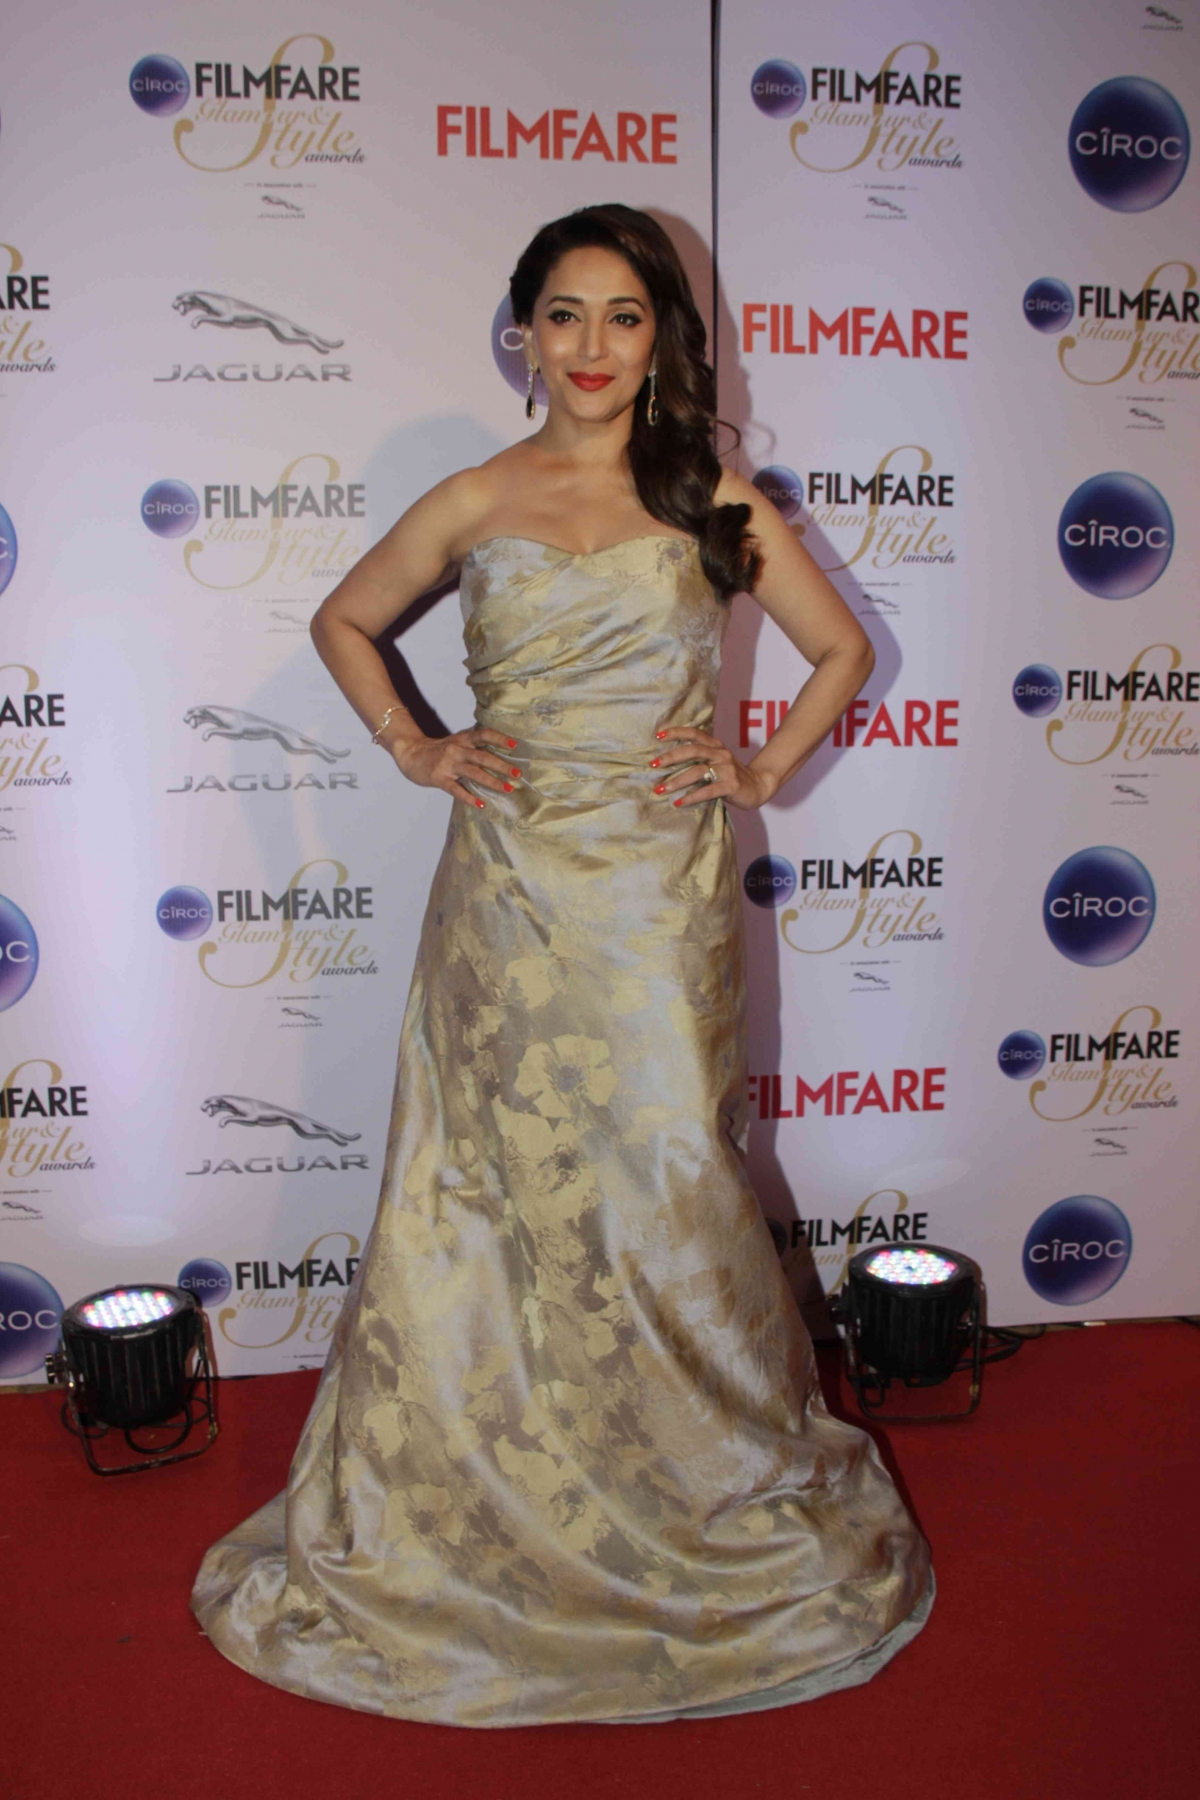 http://data1.ibtimes.co.in/en/full/564745/filmfare-glamour-style-awards-2015-sonam-kapoor-shruti-haasan-other-worst-dressed-celebs.jpg